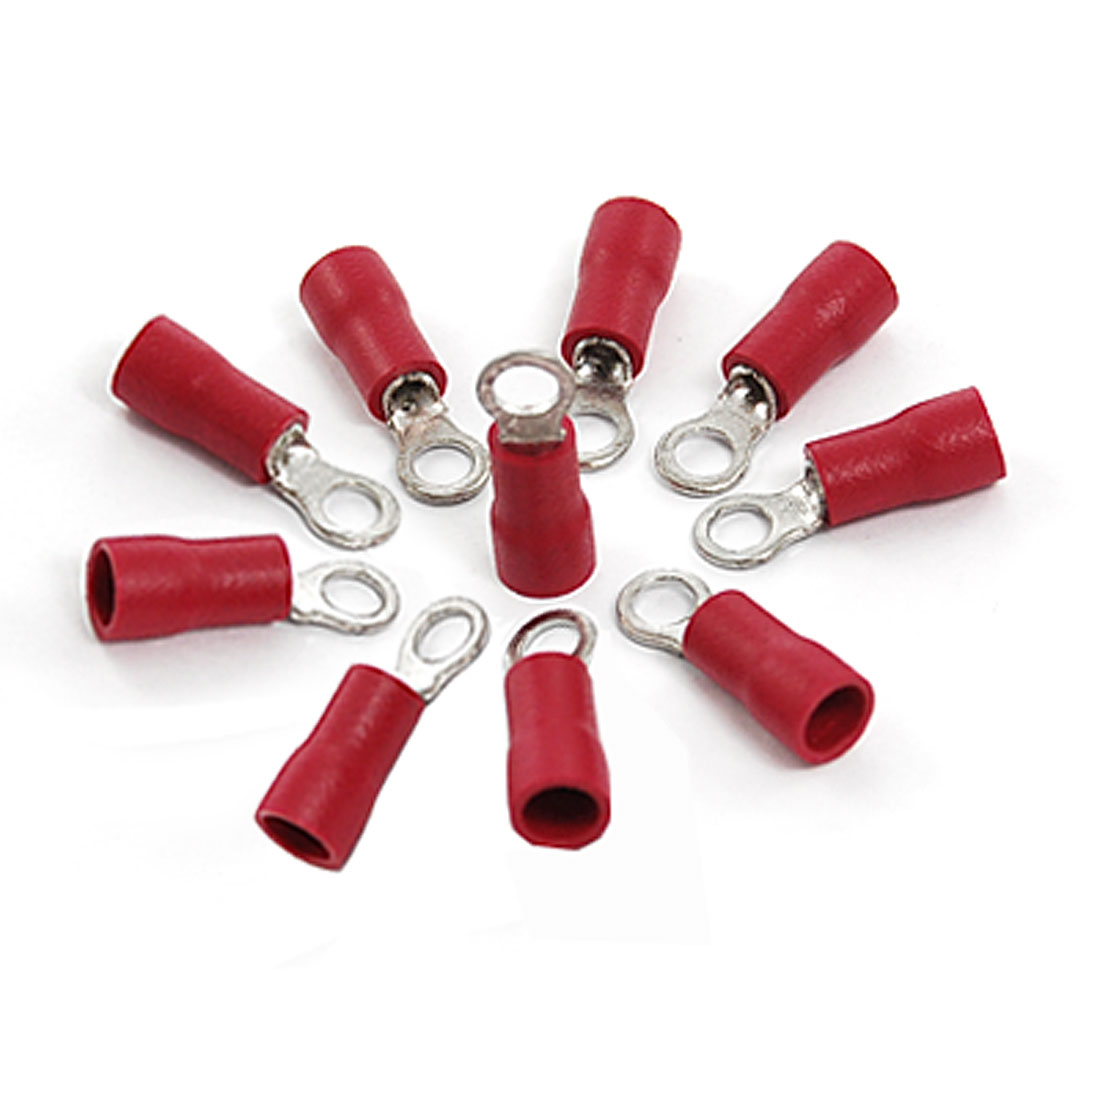 RV1.25-3.2 Red PVC Sleeve Insulated Ring Tongue Terminals 10 Pcs